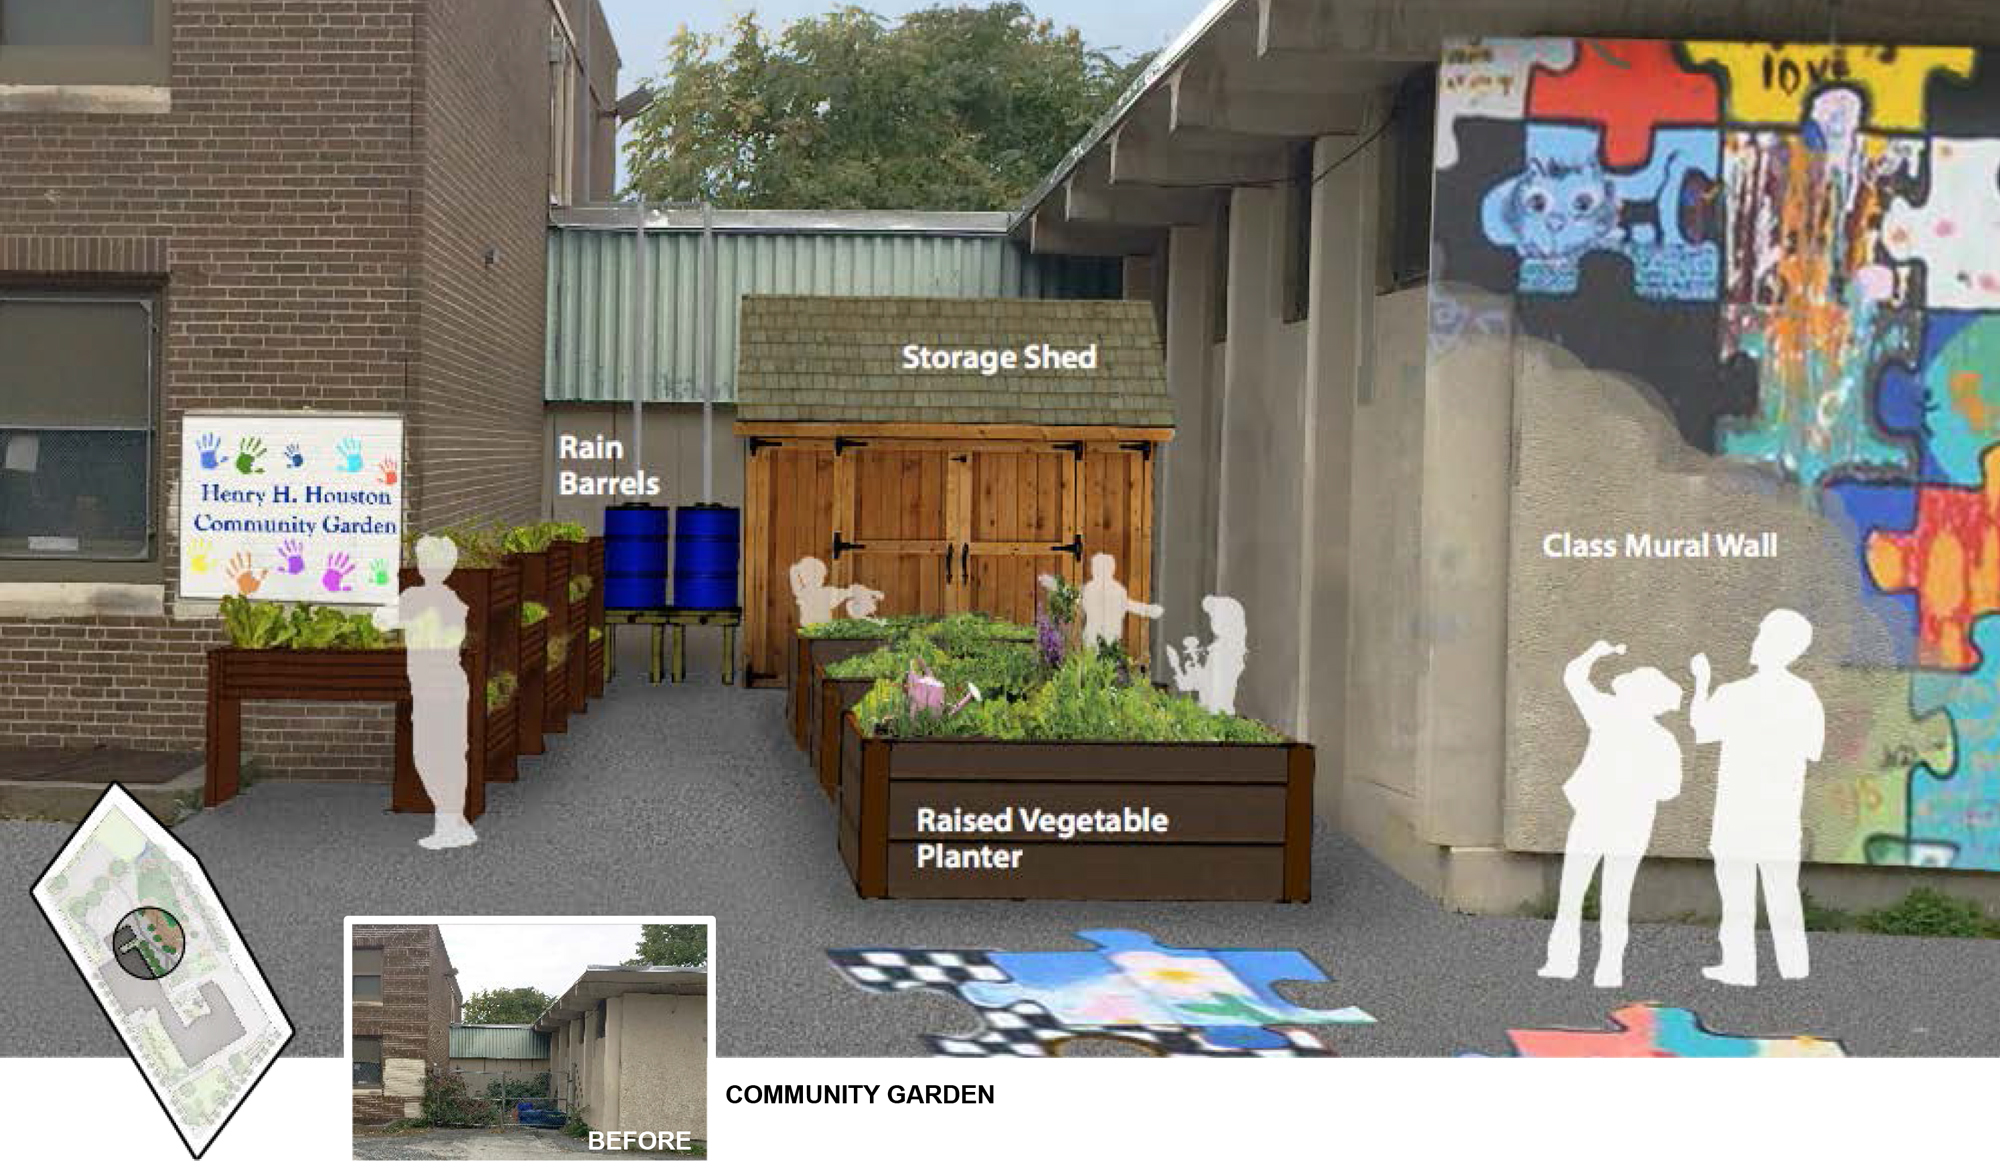 Iowa State University landscape architecture students' design for a community garden at Houston Elementary in Philadelphia.